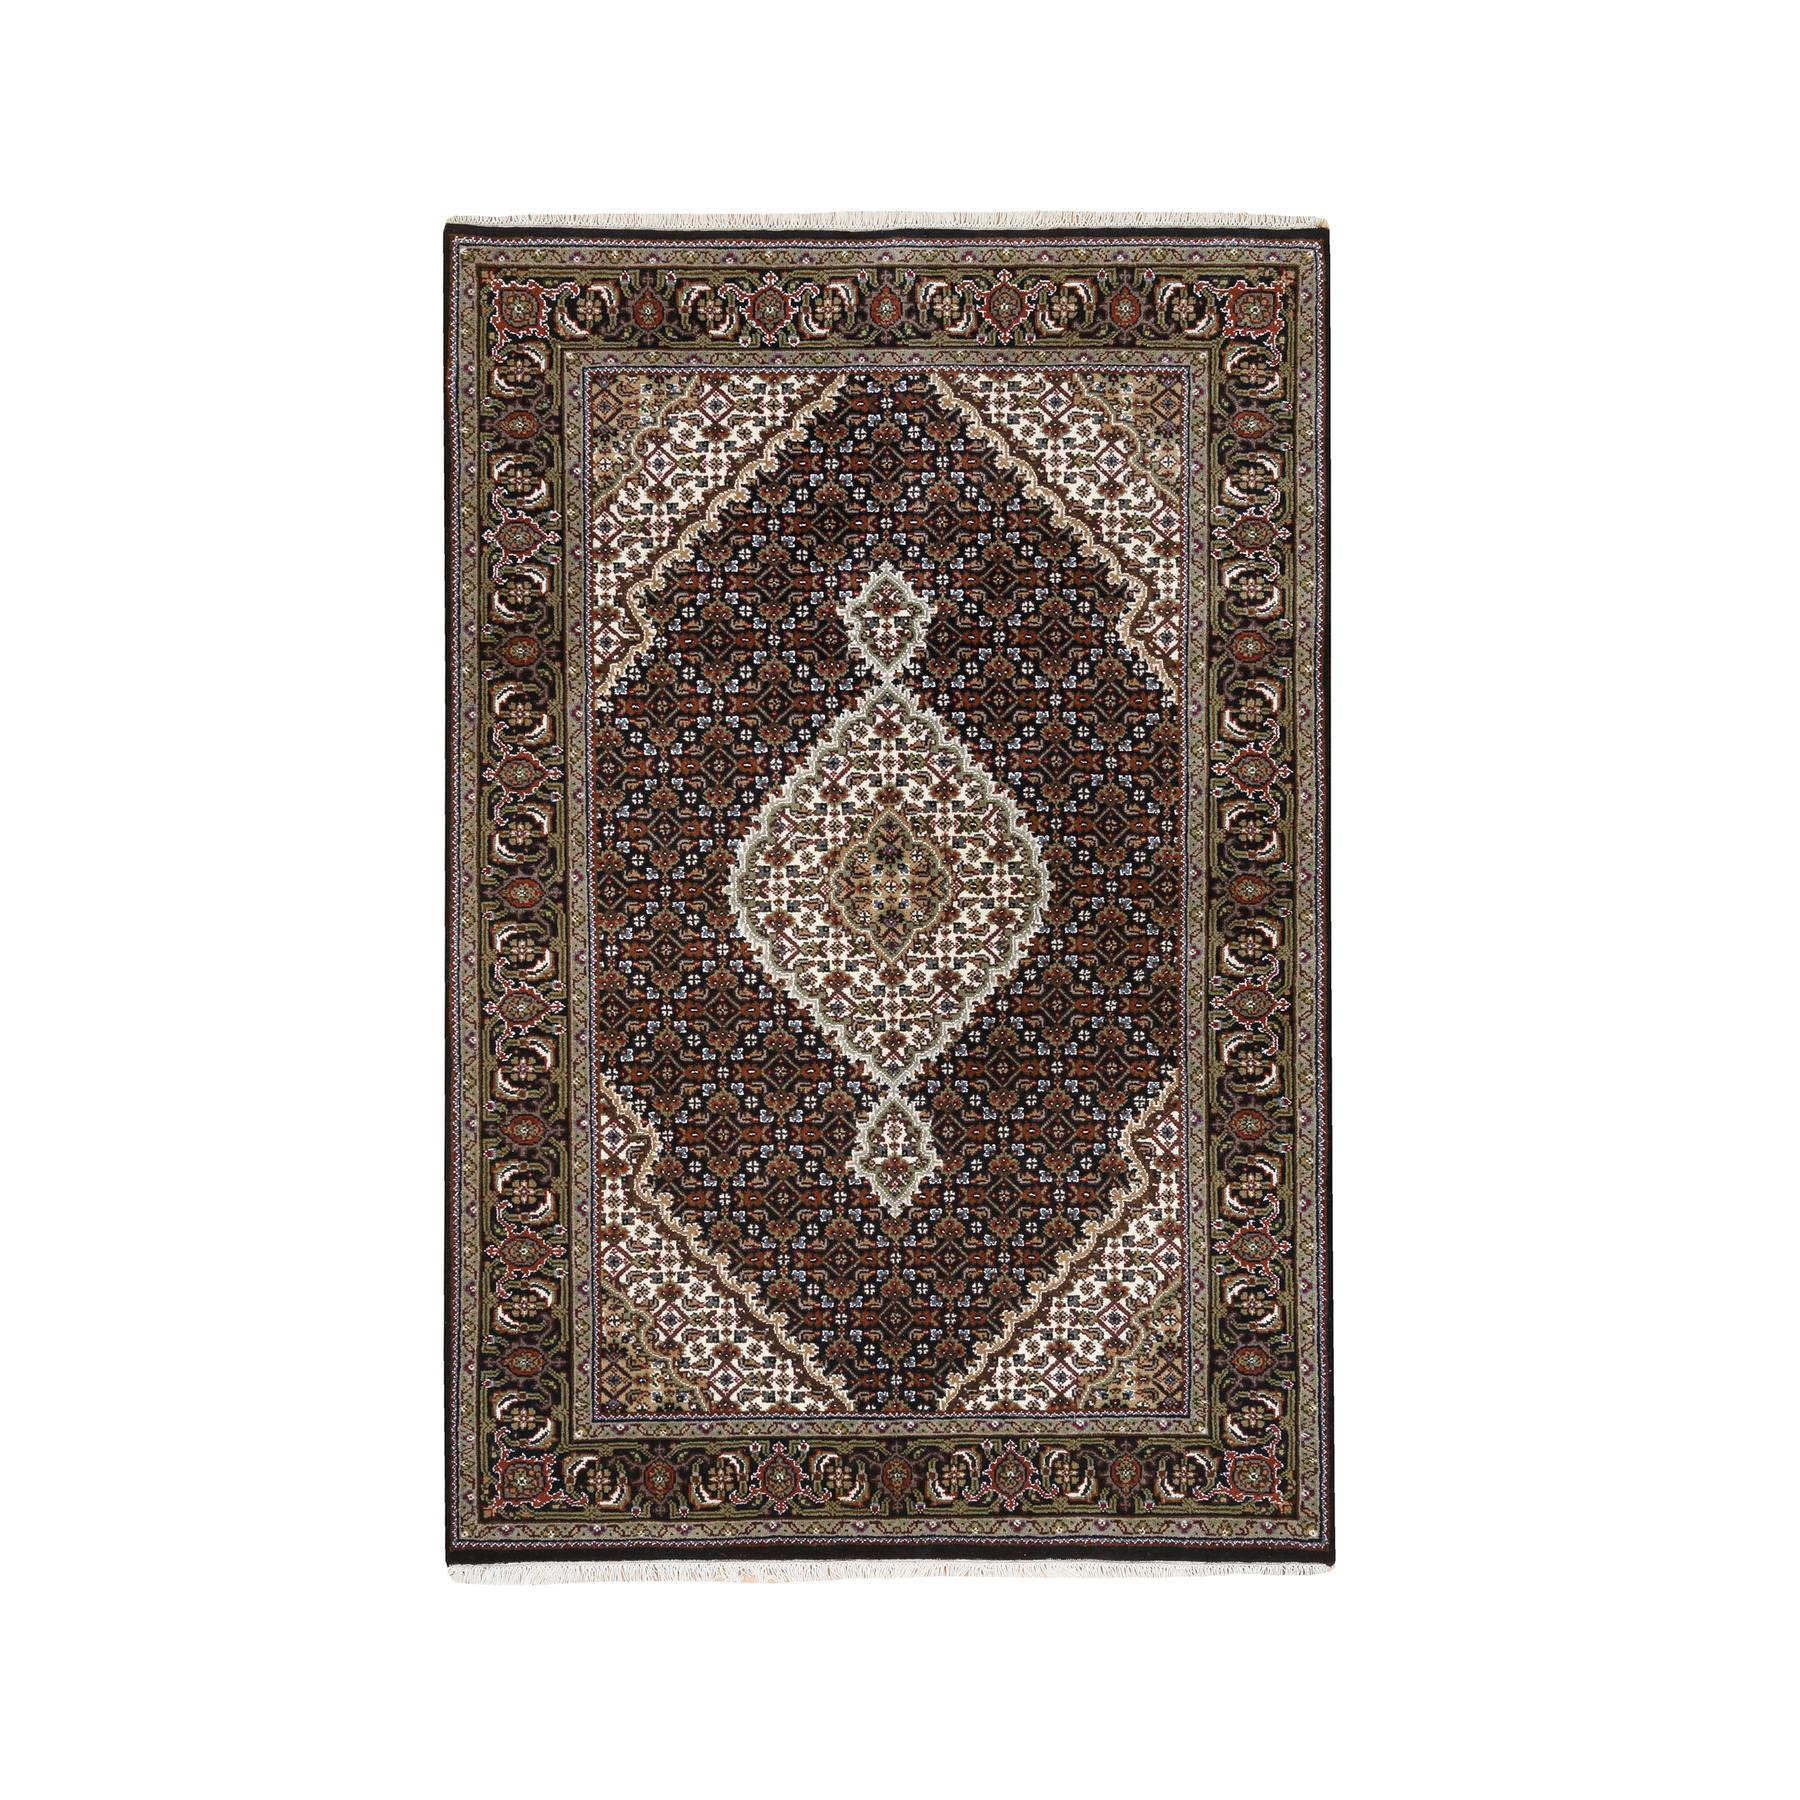 Pirniakan Collection Hand Knotted Black Rug No: 1127082